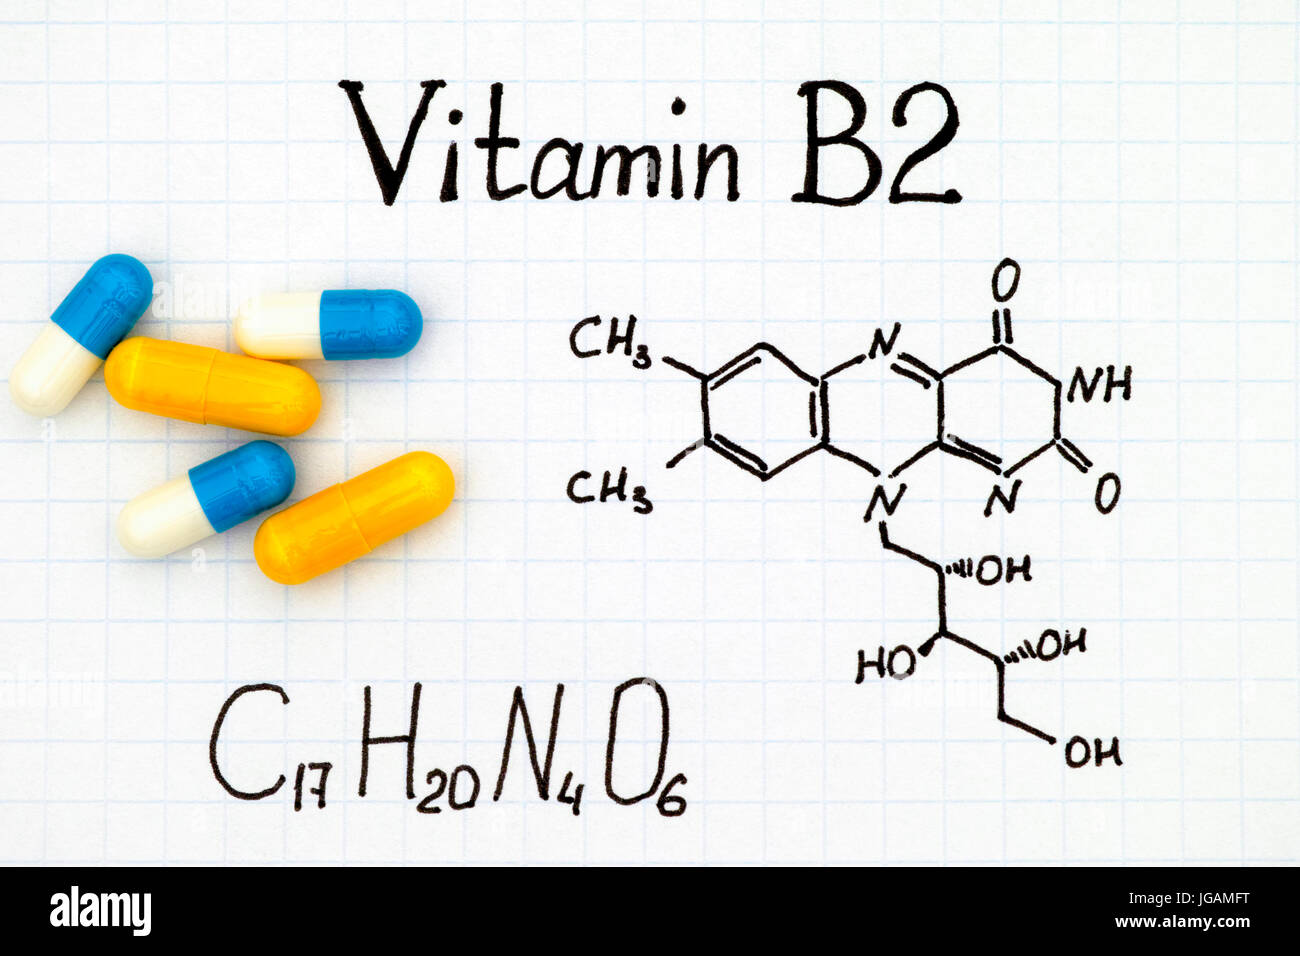 Chemical formula of Vitamin B2 and pills. - Stock Image